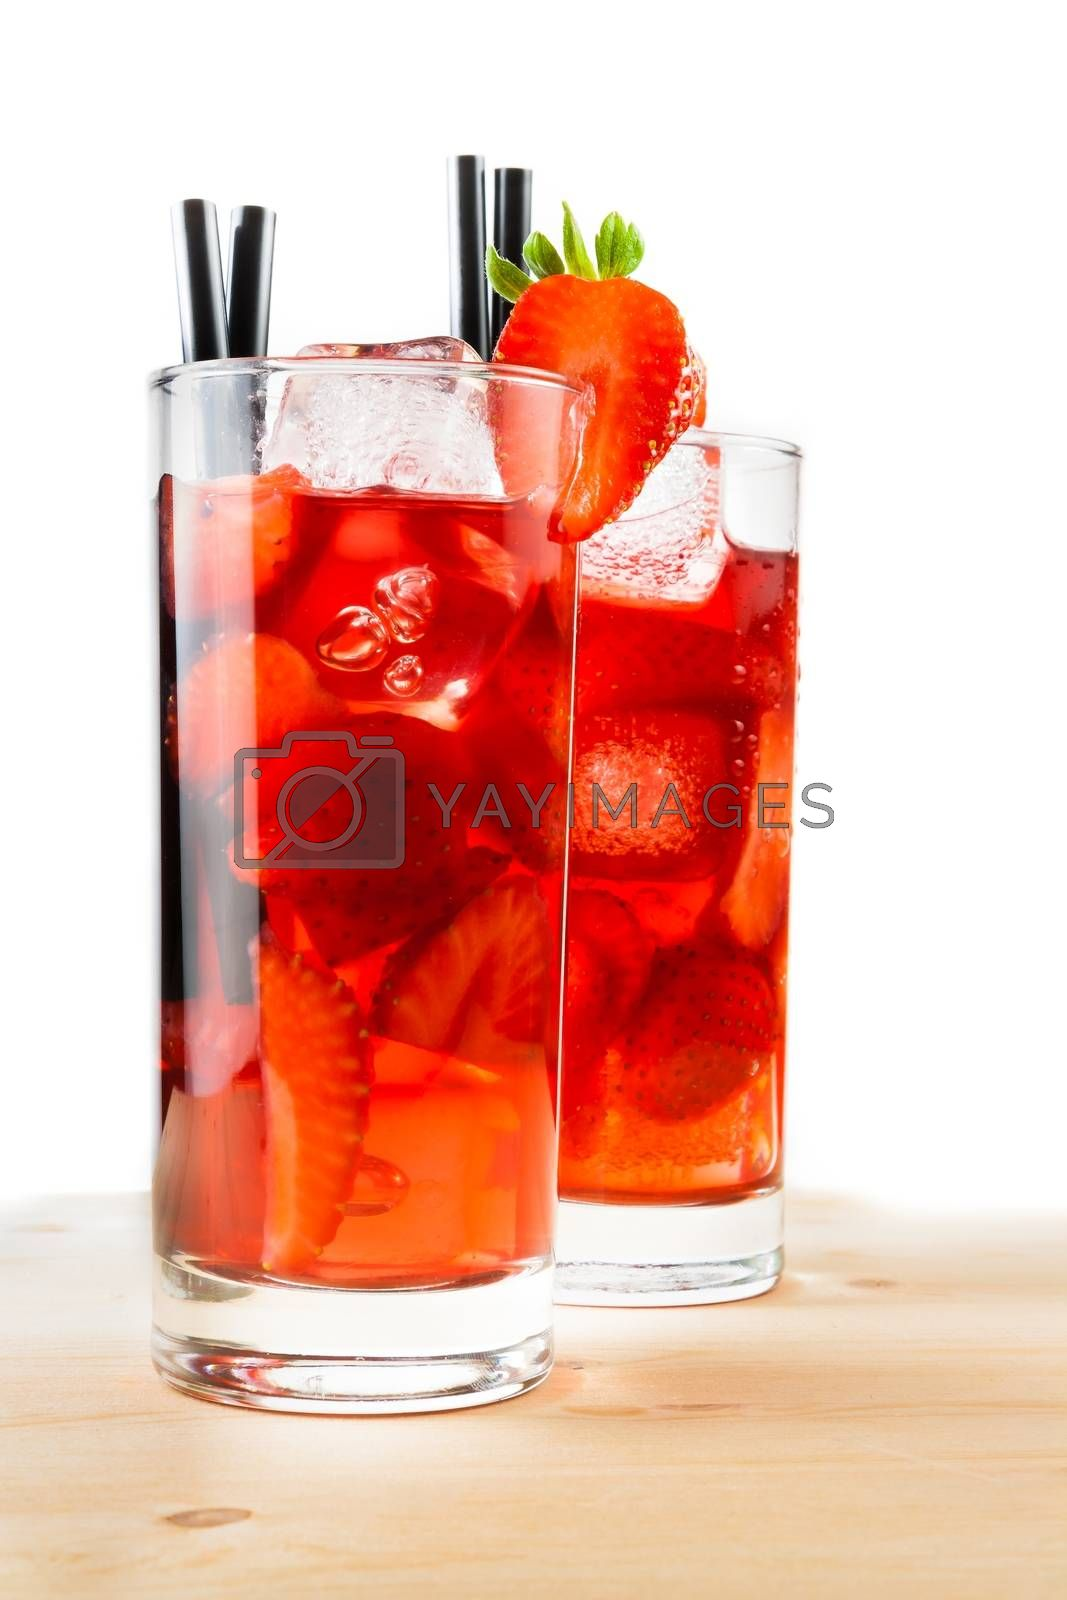 glasses of strawberry cocktail with ice on light wood table  by donfiore